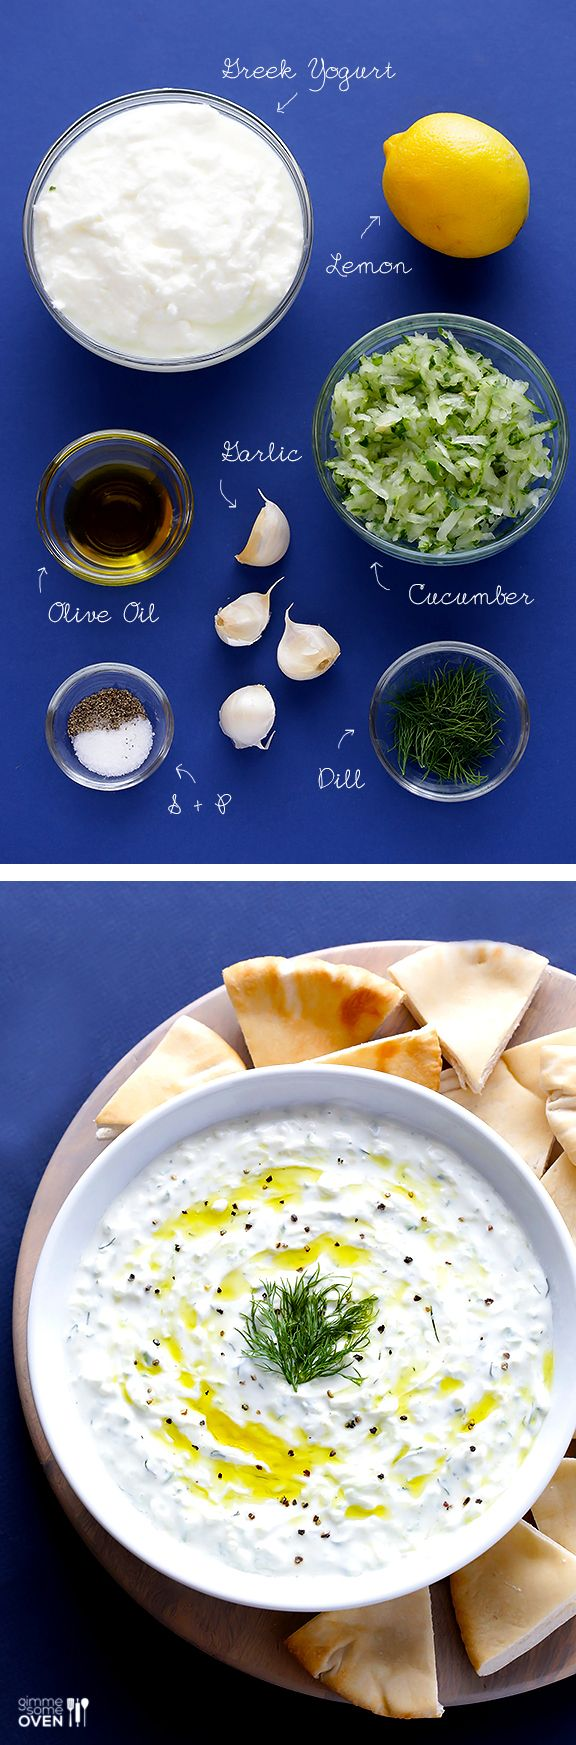 Learn how to make homemade tzatziki with this easy recipe! | gimmesomeoven.com